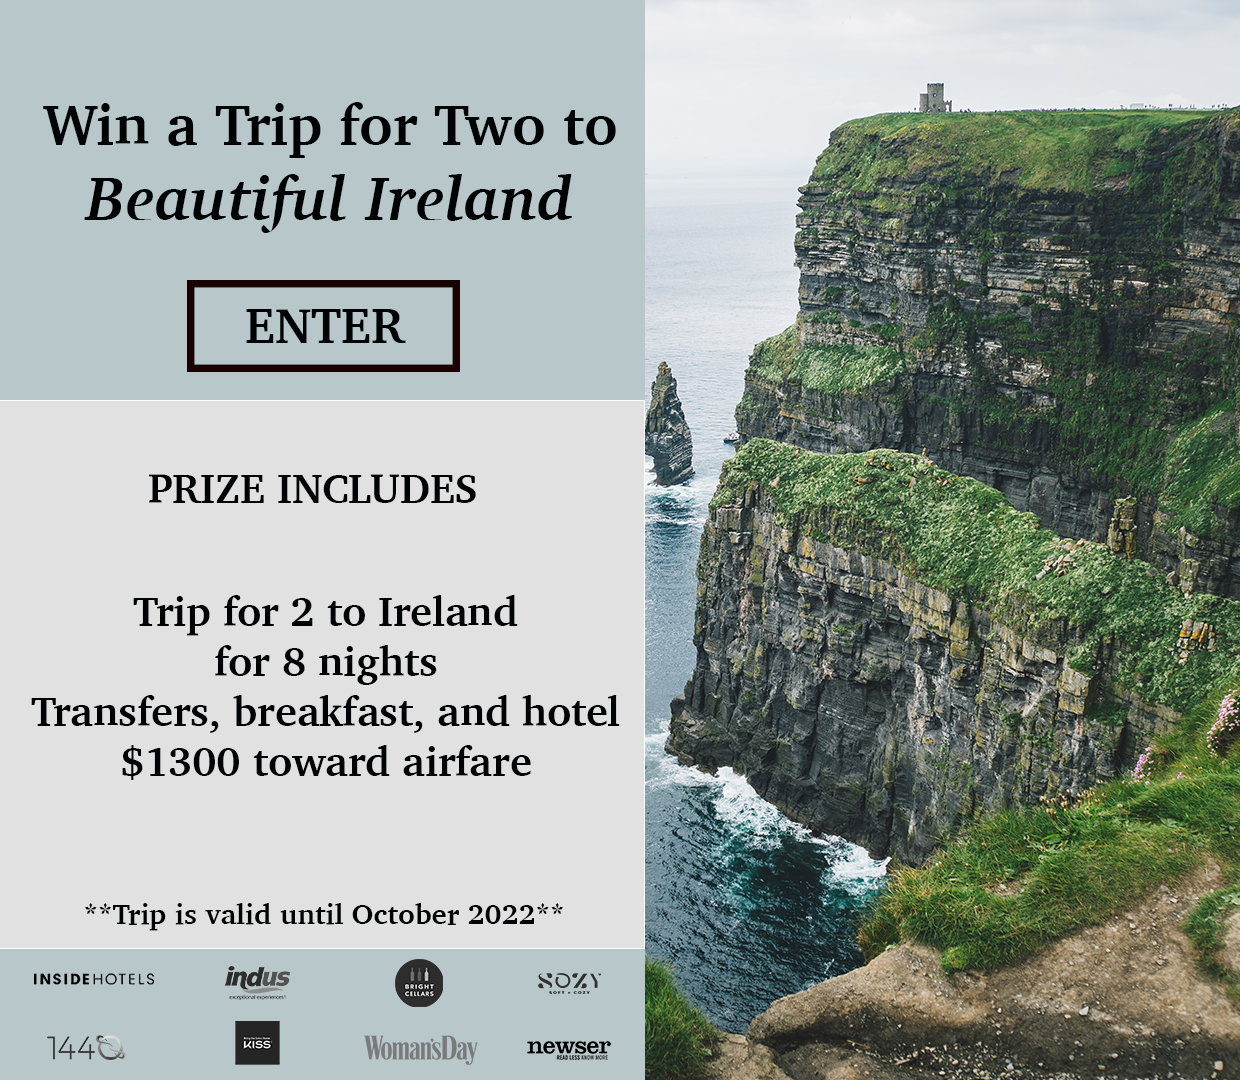 Enter for a chance to win a trip for 2 to Ireland for 8 nights, including transfers, breakfast, hotel, and $1300 toward airfare.